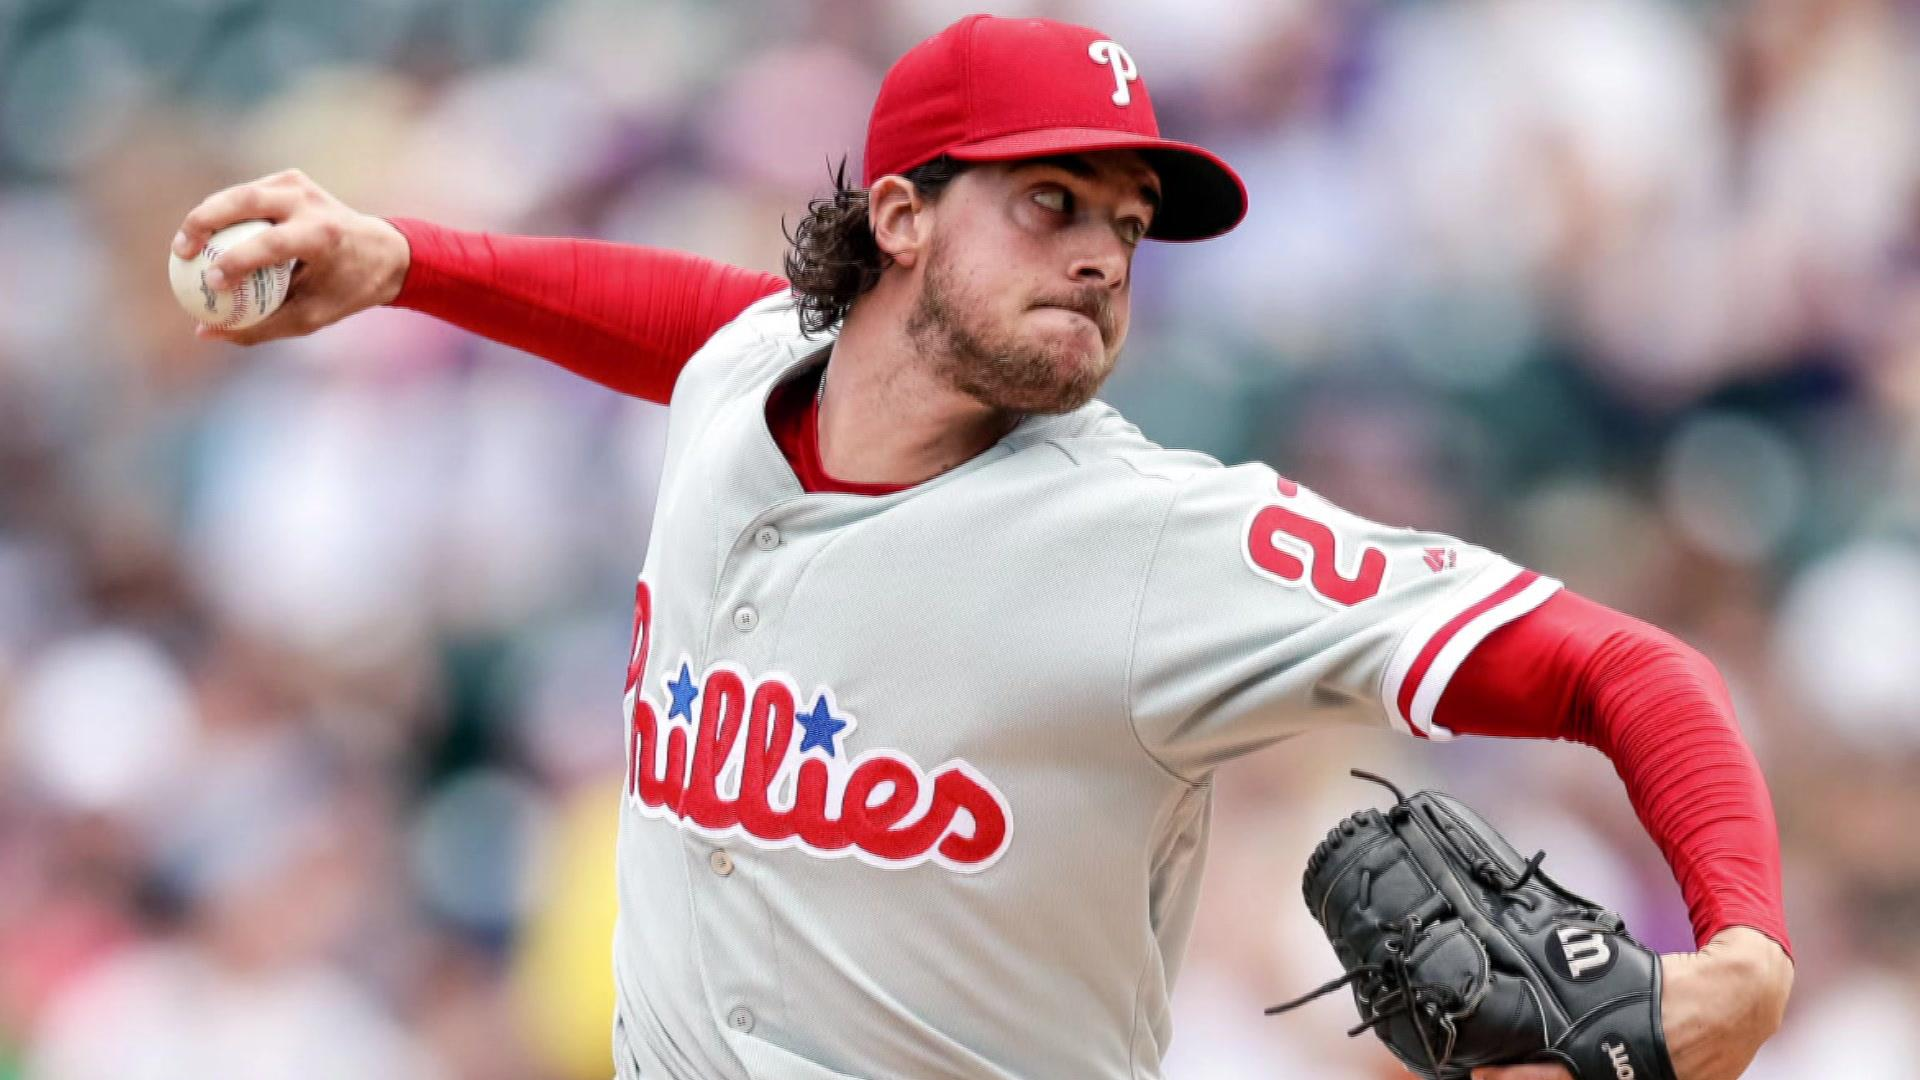 Aaron Nola Wallpaper 10+ - Page 3 of 3 - hdwallpaper20.com